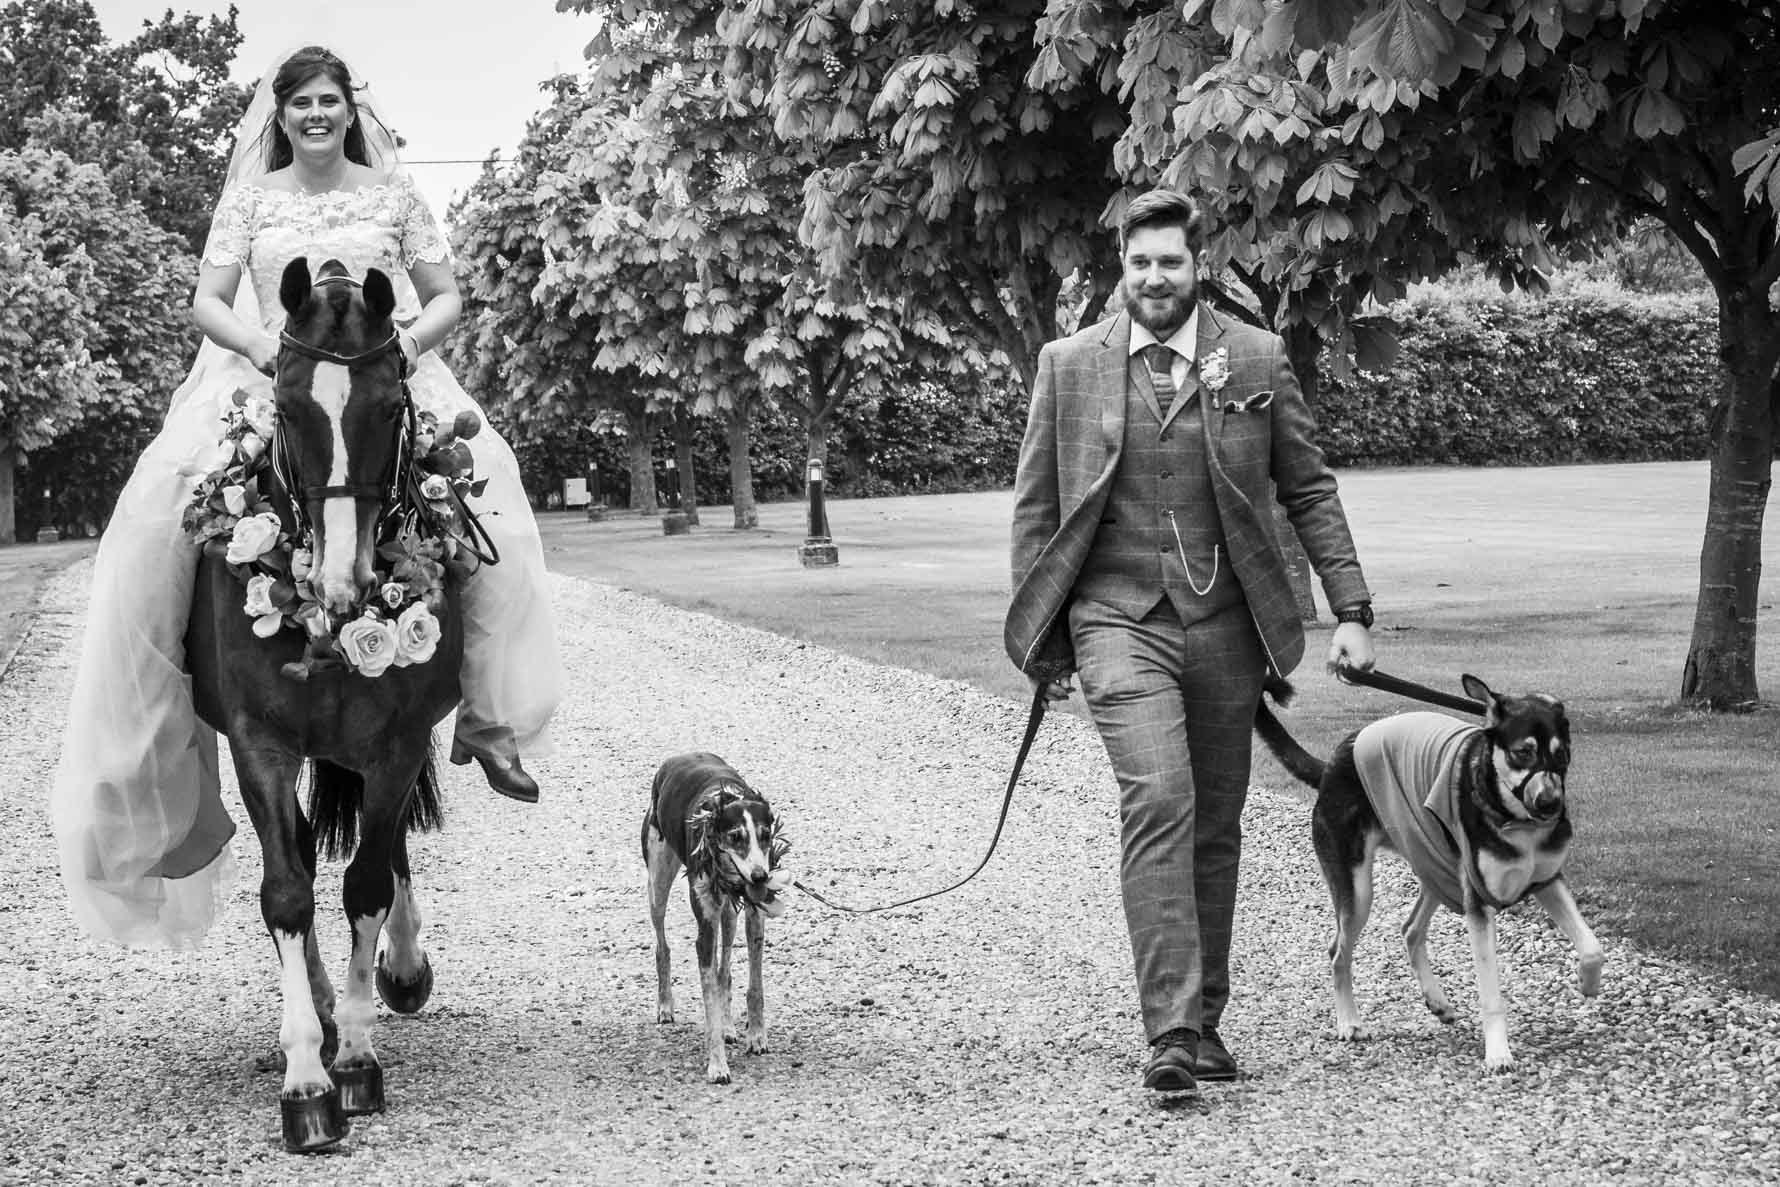 A bride sits atop her horse while her groom walks alongside with two dogs on a lead